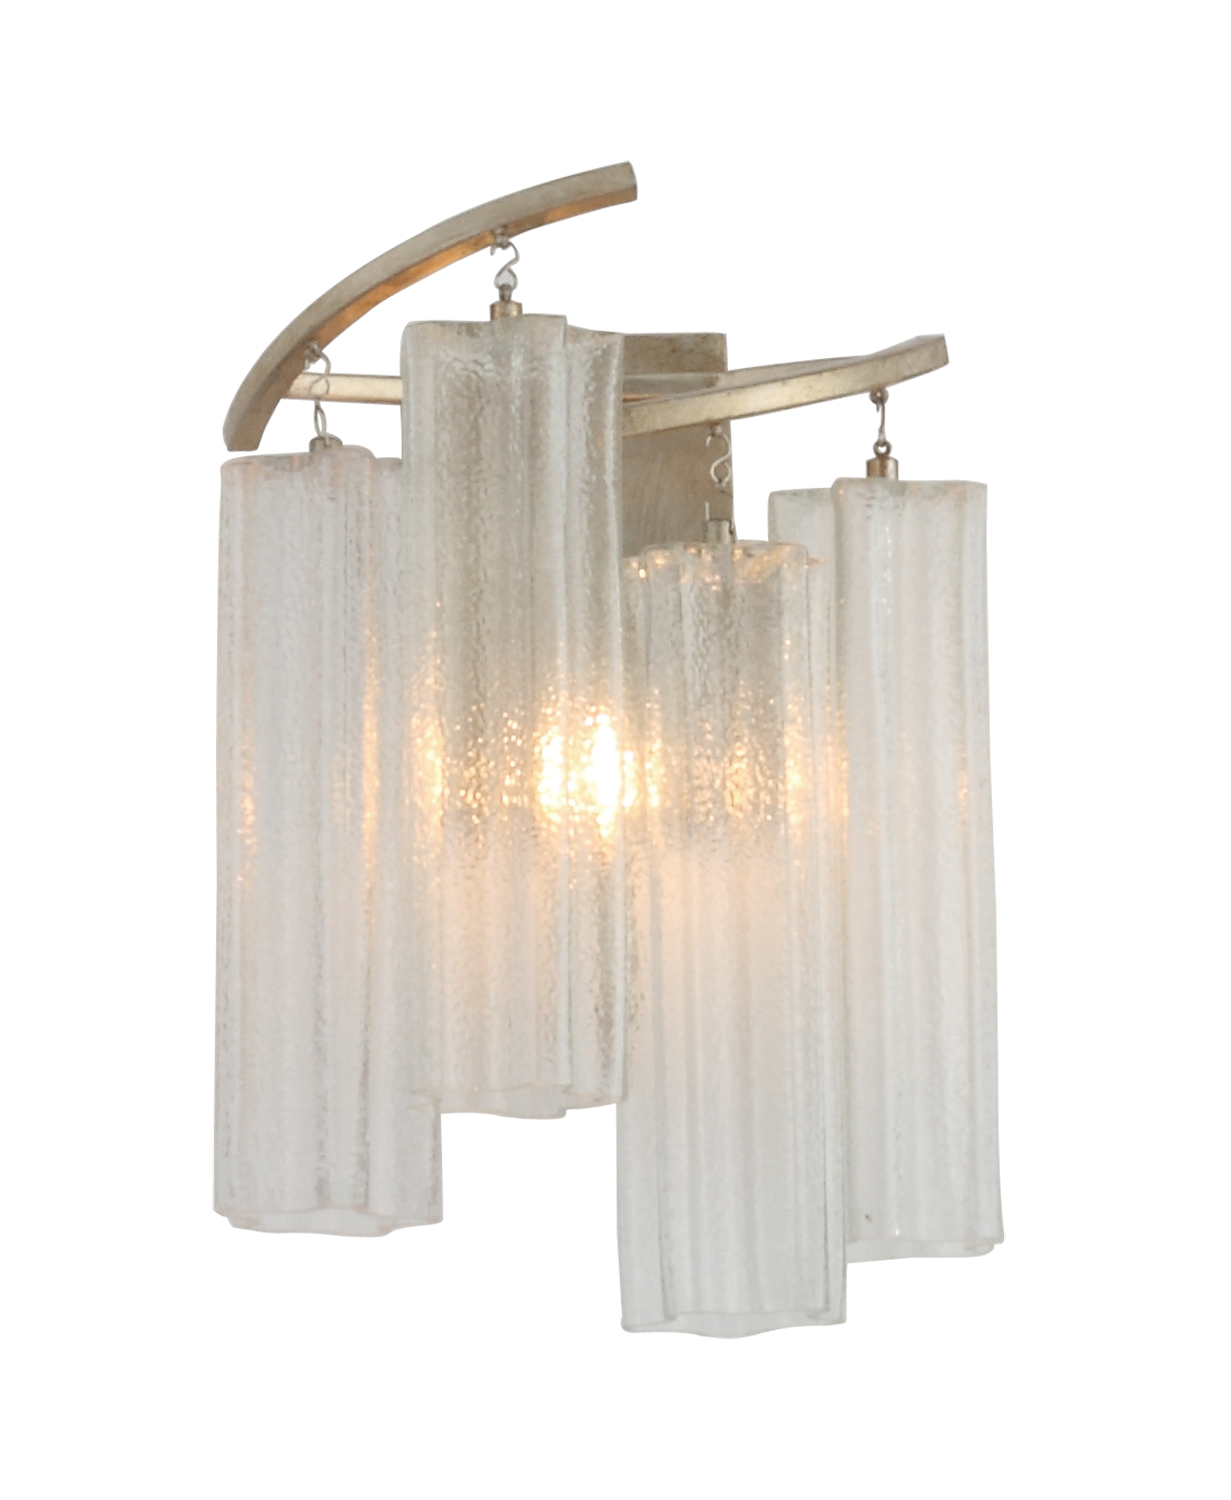 Victoria Wall Sconce | Maxim Lighting